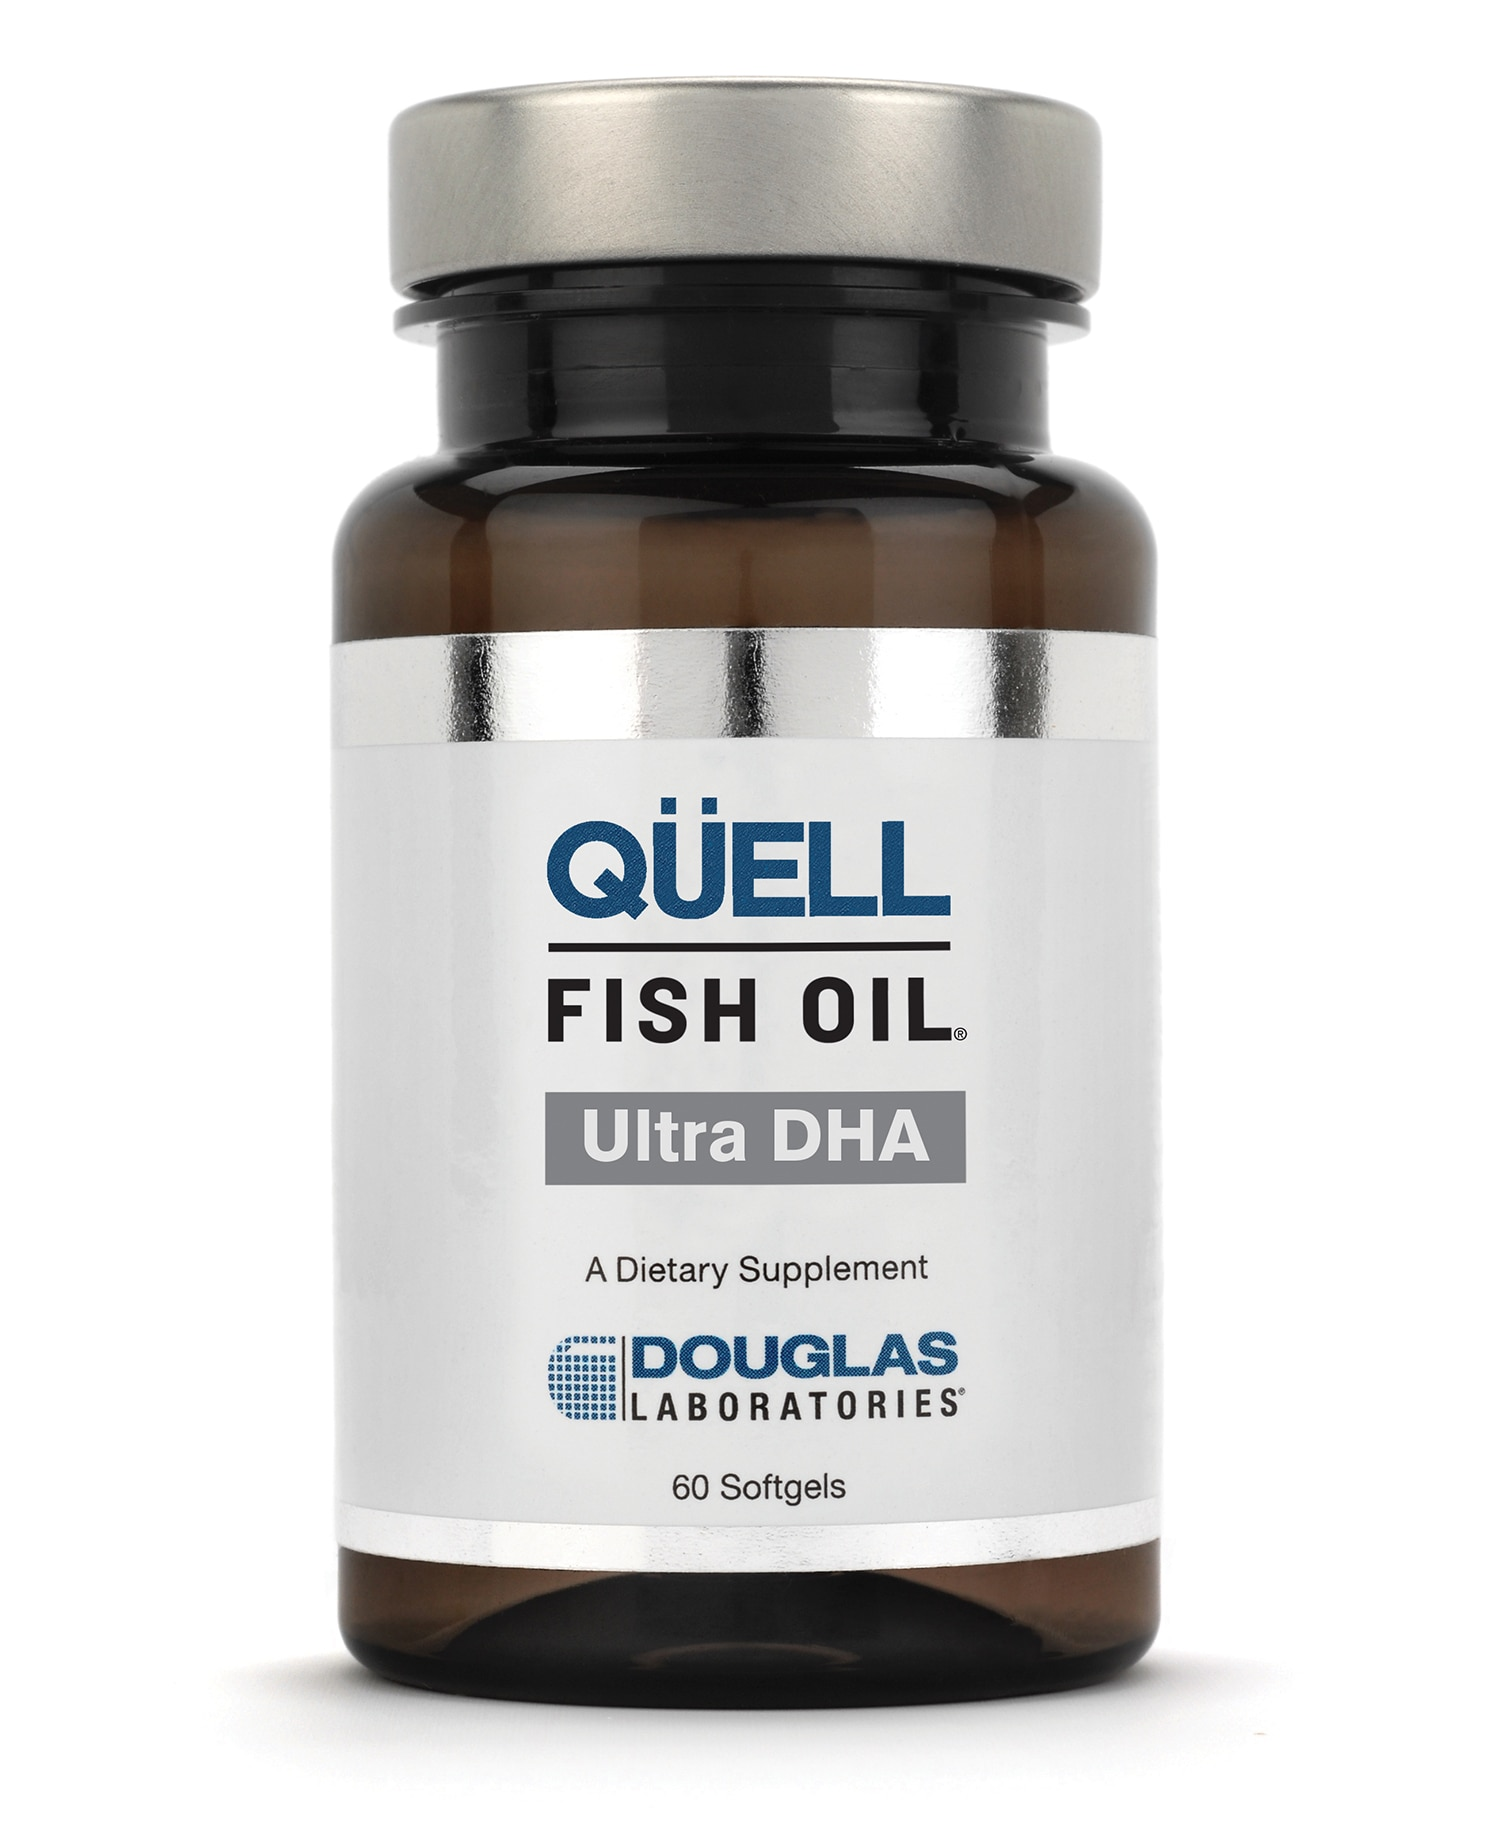 Q Ell Fish Oil Ultra Dha